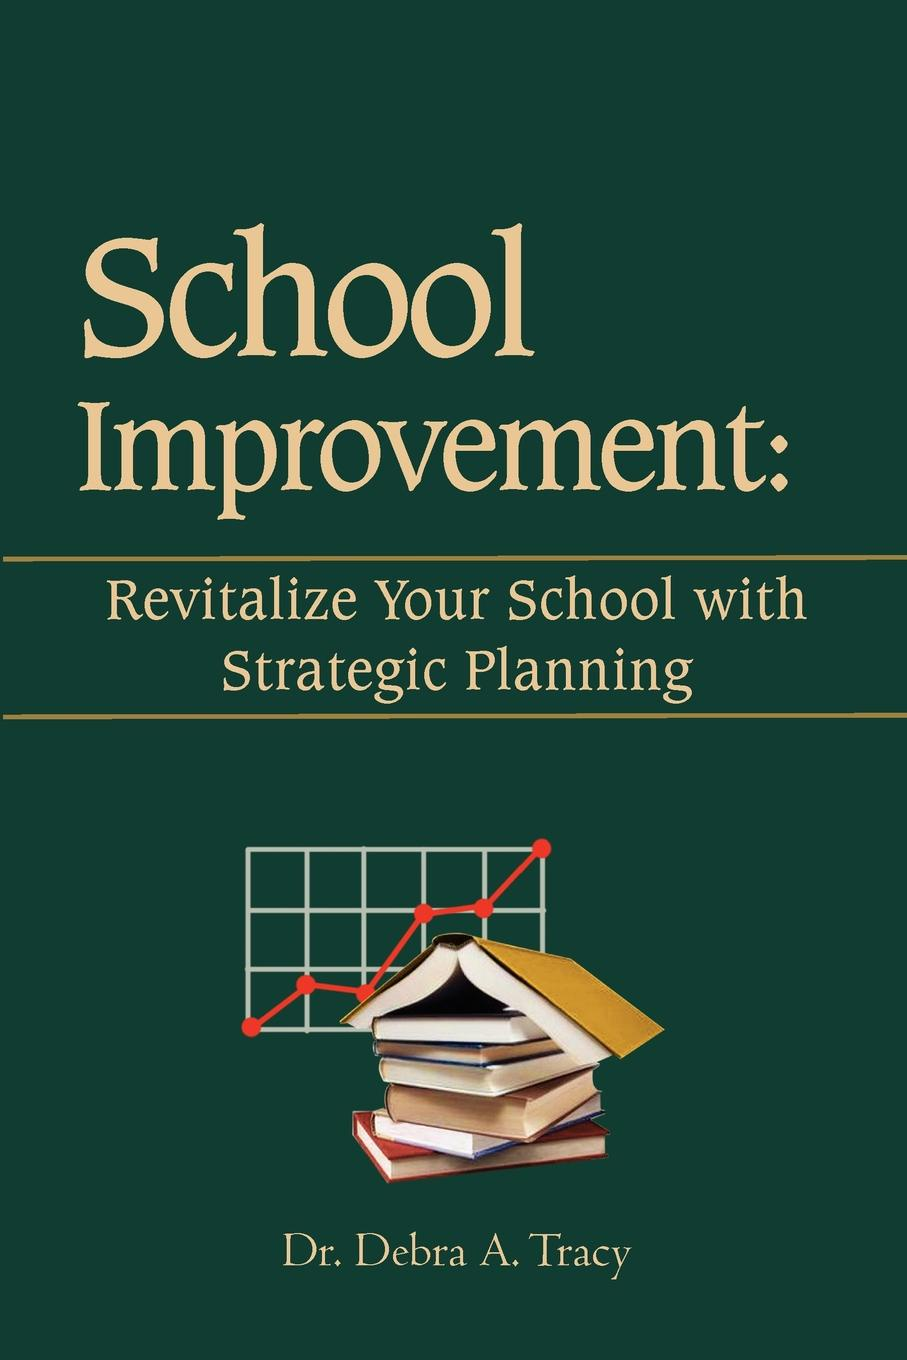 лучшая цена Debra A. Tracy, Dr Debra a. Tracy School Improvement. Revitalize Your School with Strategic Planning: Revitalize Your School with Strategic Planning